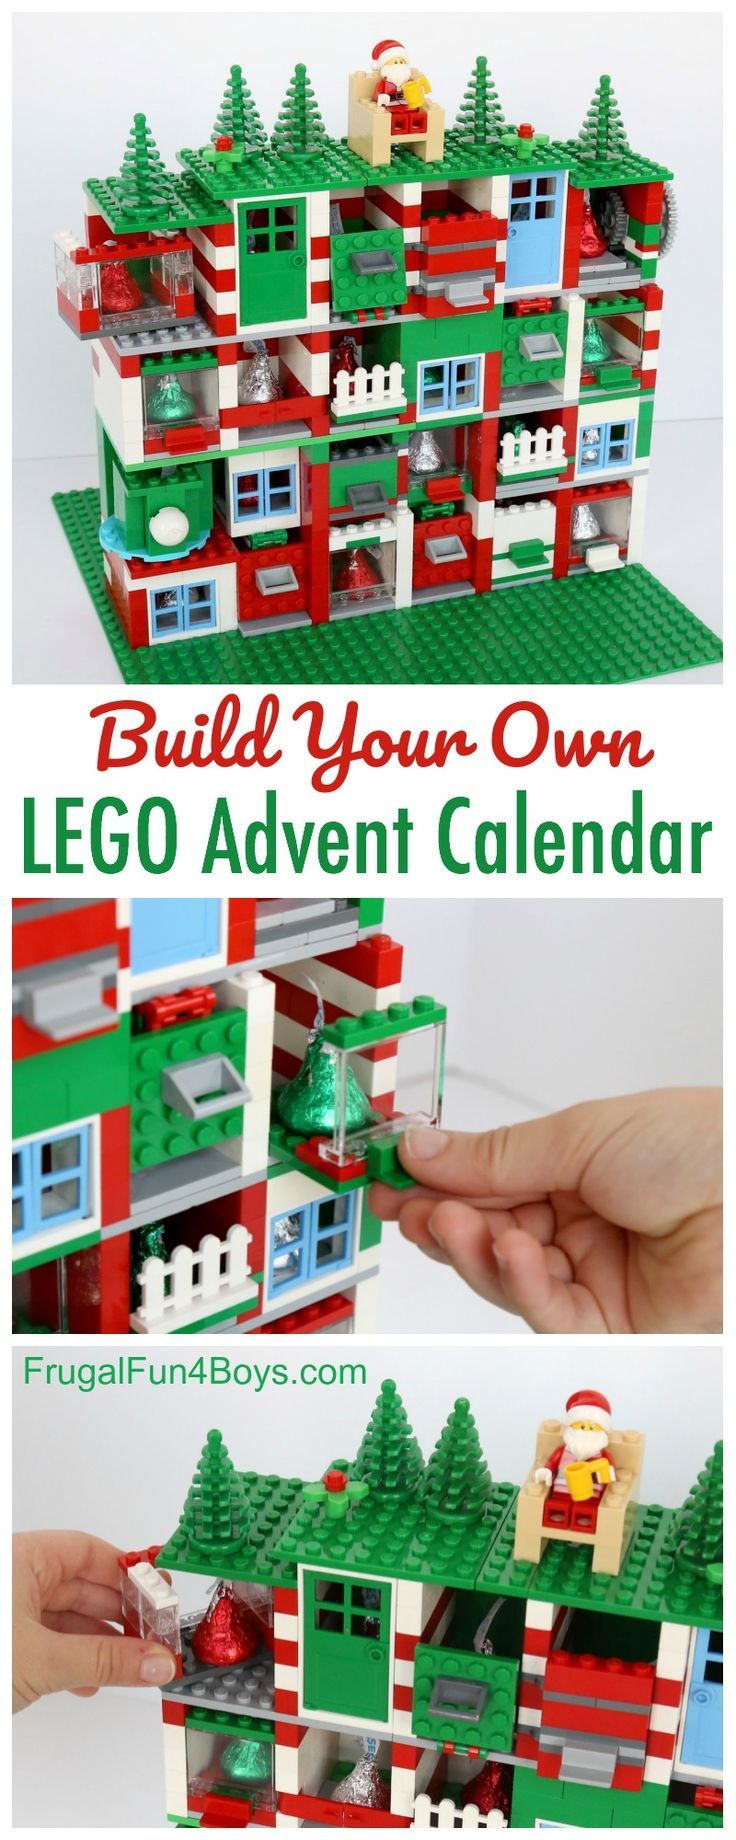 How to build an awesome lego advent calendar with doors and candy how to build an awesome lego advent calendar with doors and candy voltagebd Choice Image